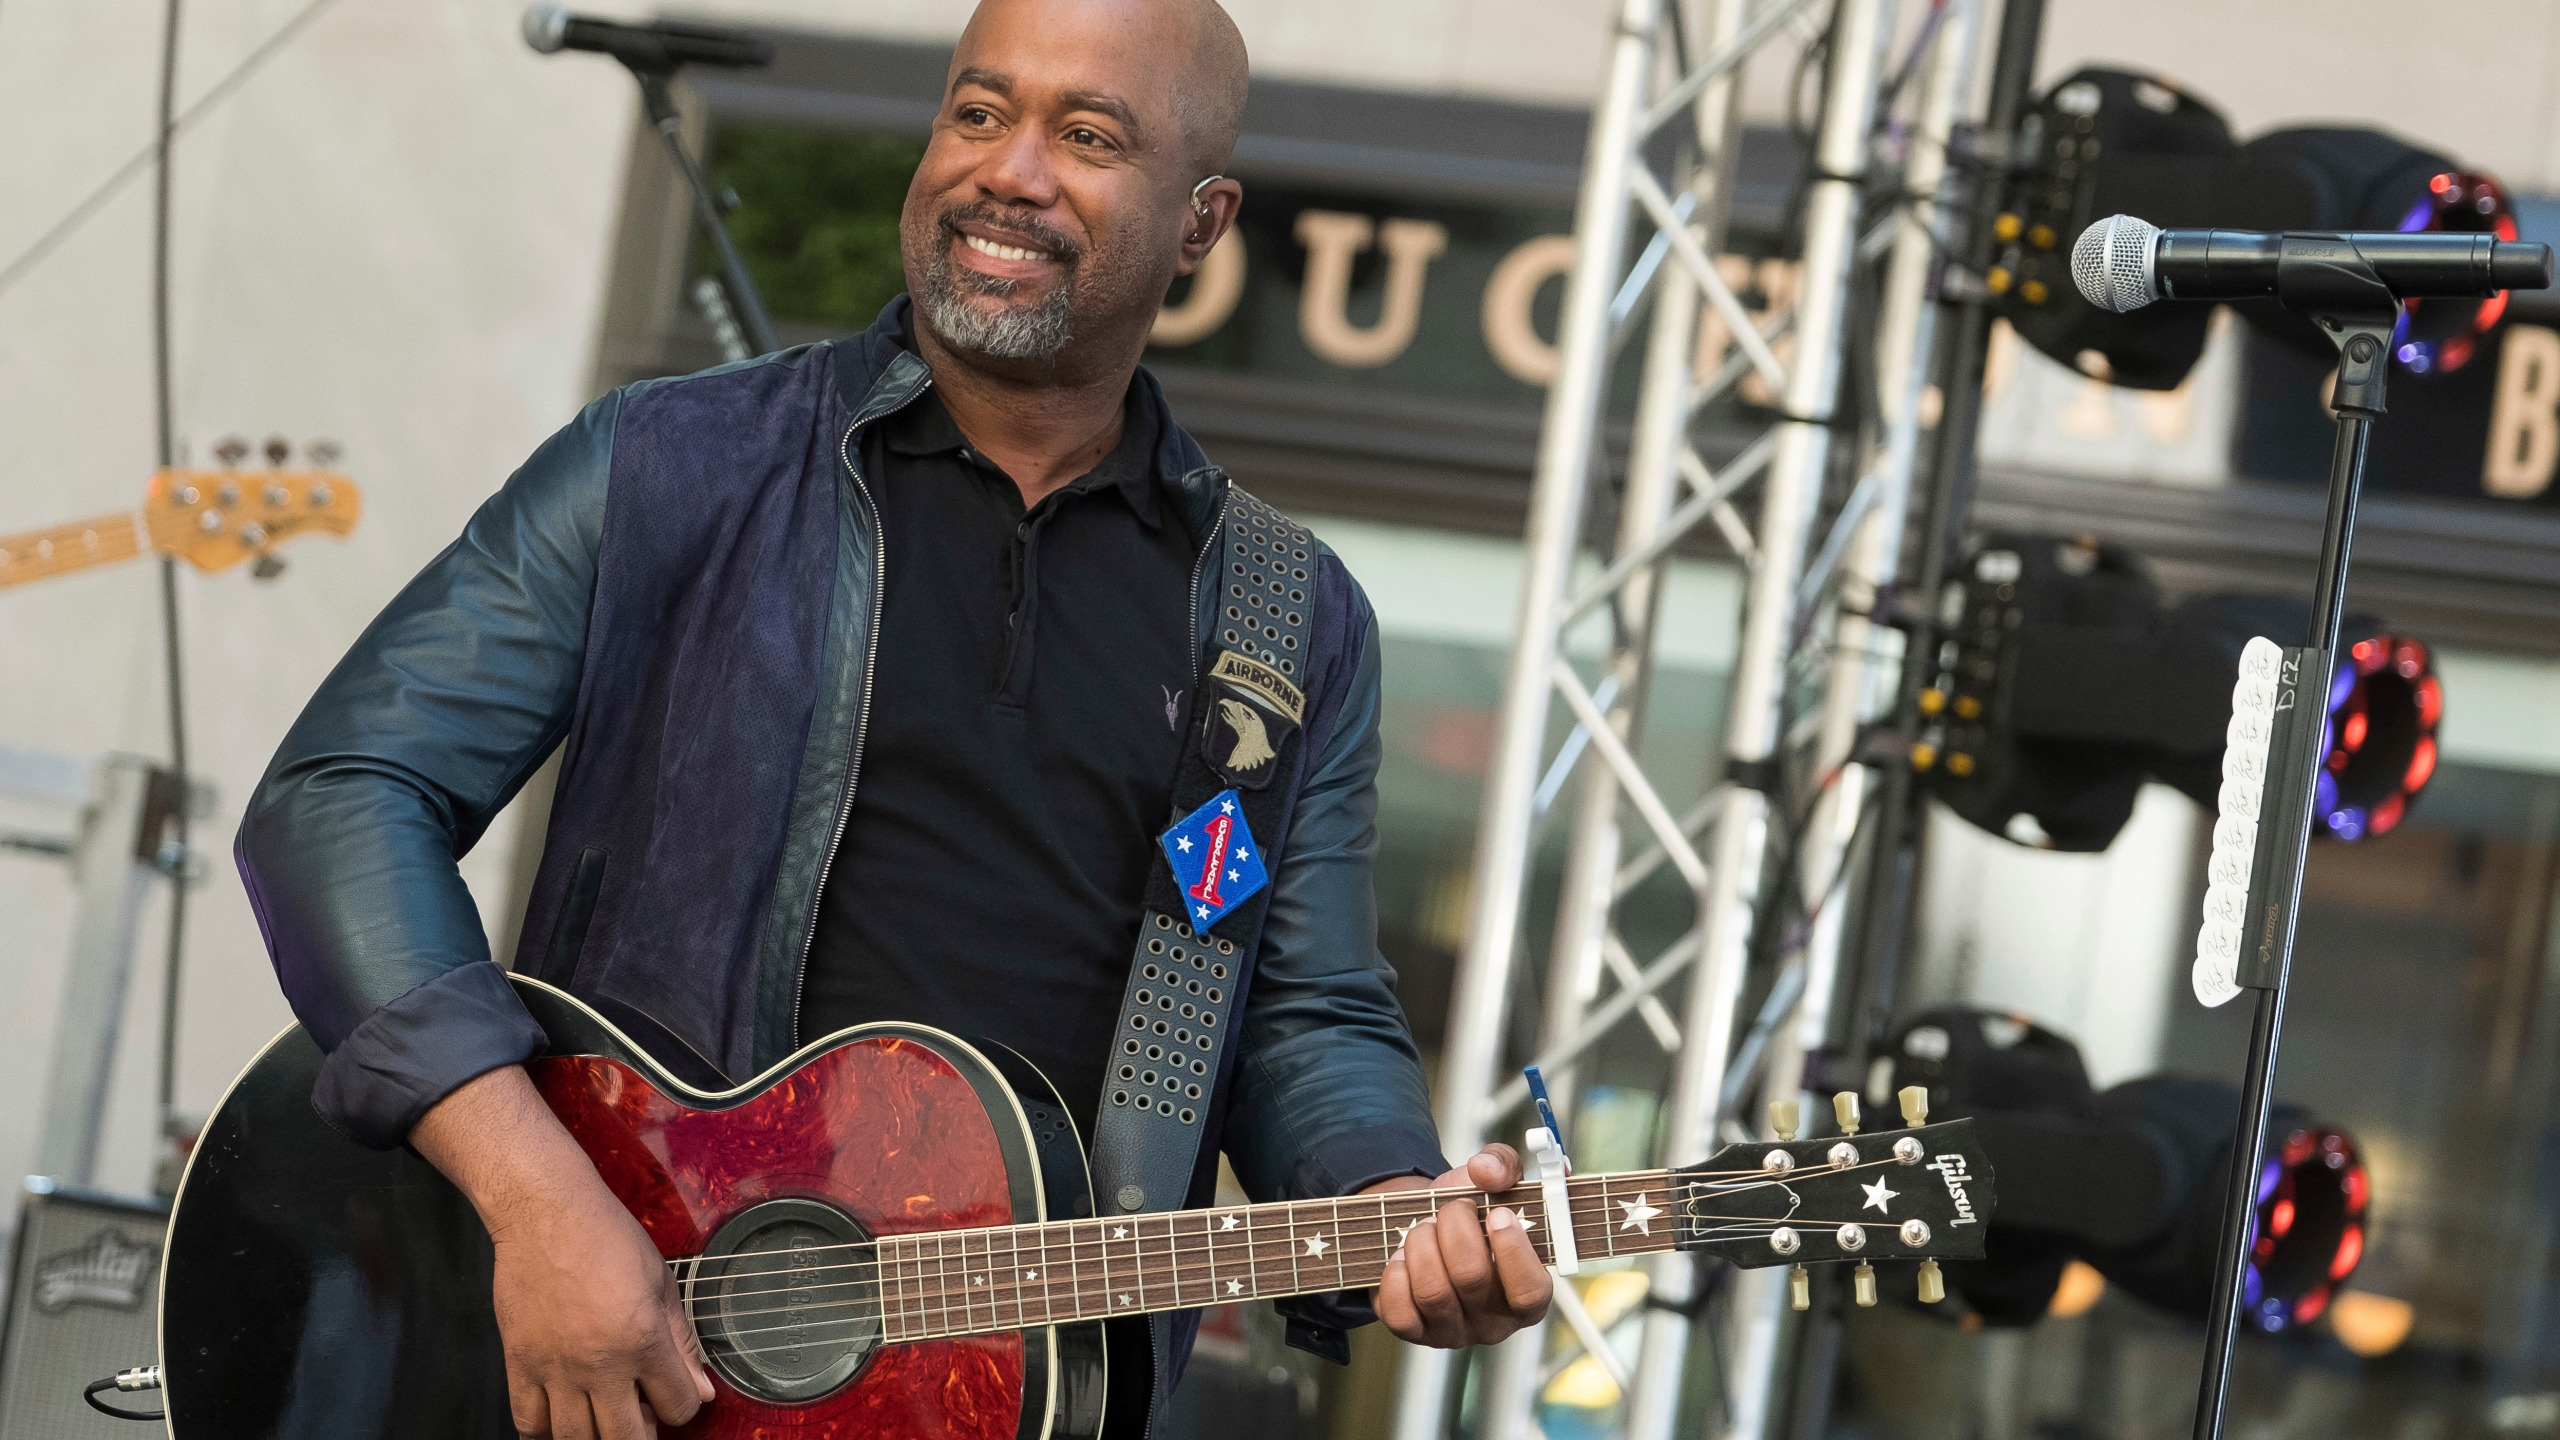 """FILE - In this May 25, 2018 file photo, Darius Rucker performs on NBC's Today show at Rockefeller Plaza in New York. The Country singer couldn't quite believe it when he was surprised this week with the news that his song """"Wagon Wheel"""" was certified eight times platinum, making it one of the top five most popular country singles ever. On Wednesday, Feb. 12, 2020, Rucker stopped by the Country Music Hall of Fame and Museum to his items in an exhibit, but his label, Universal Music Group Nashville, surprised him with a plaque featuring eight platinum-colored records. (Photo by Charles Sykes/Invision/AP, File)"""